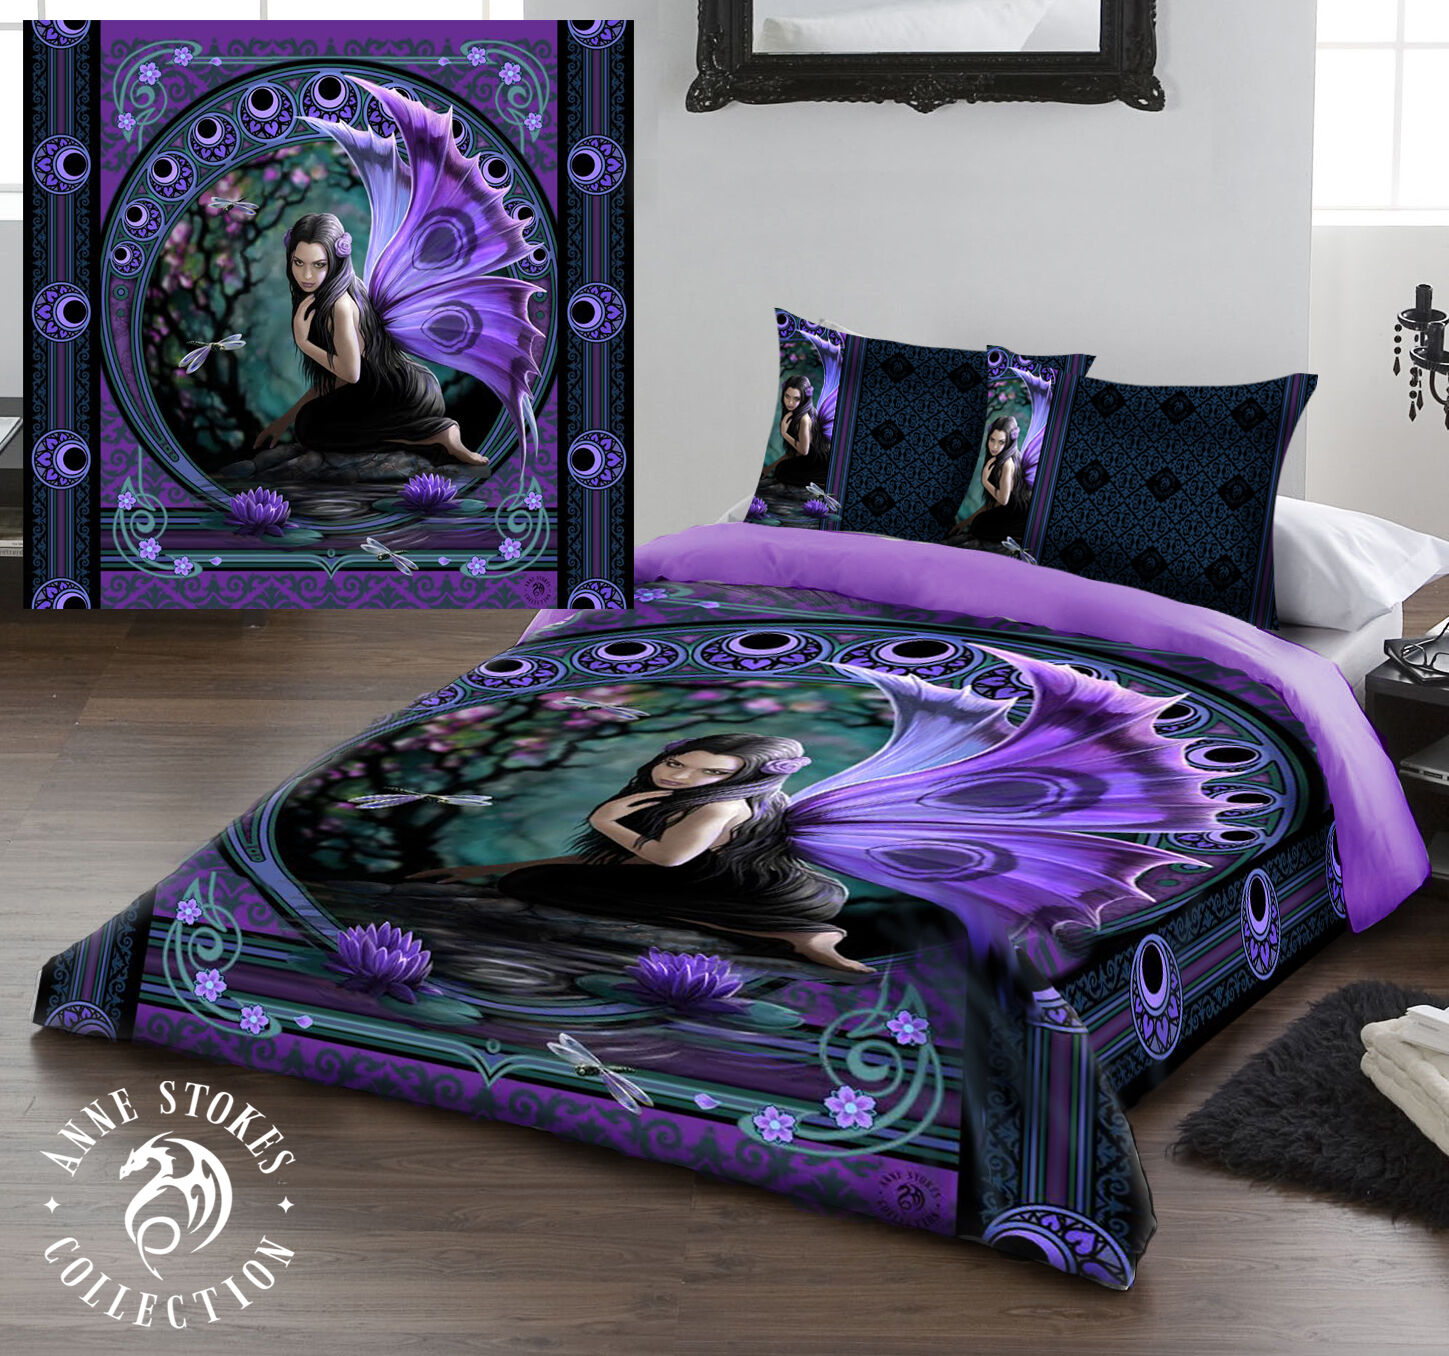 Anne Stokes NAIAD - Duvet Cover Bed Linen Set - Available in 2 Größes